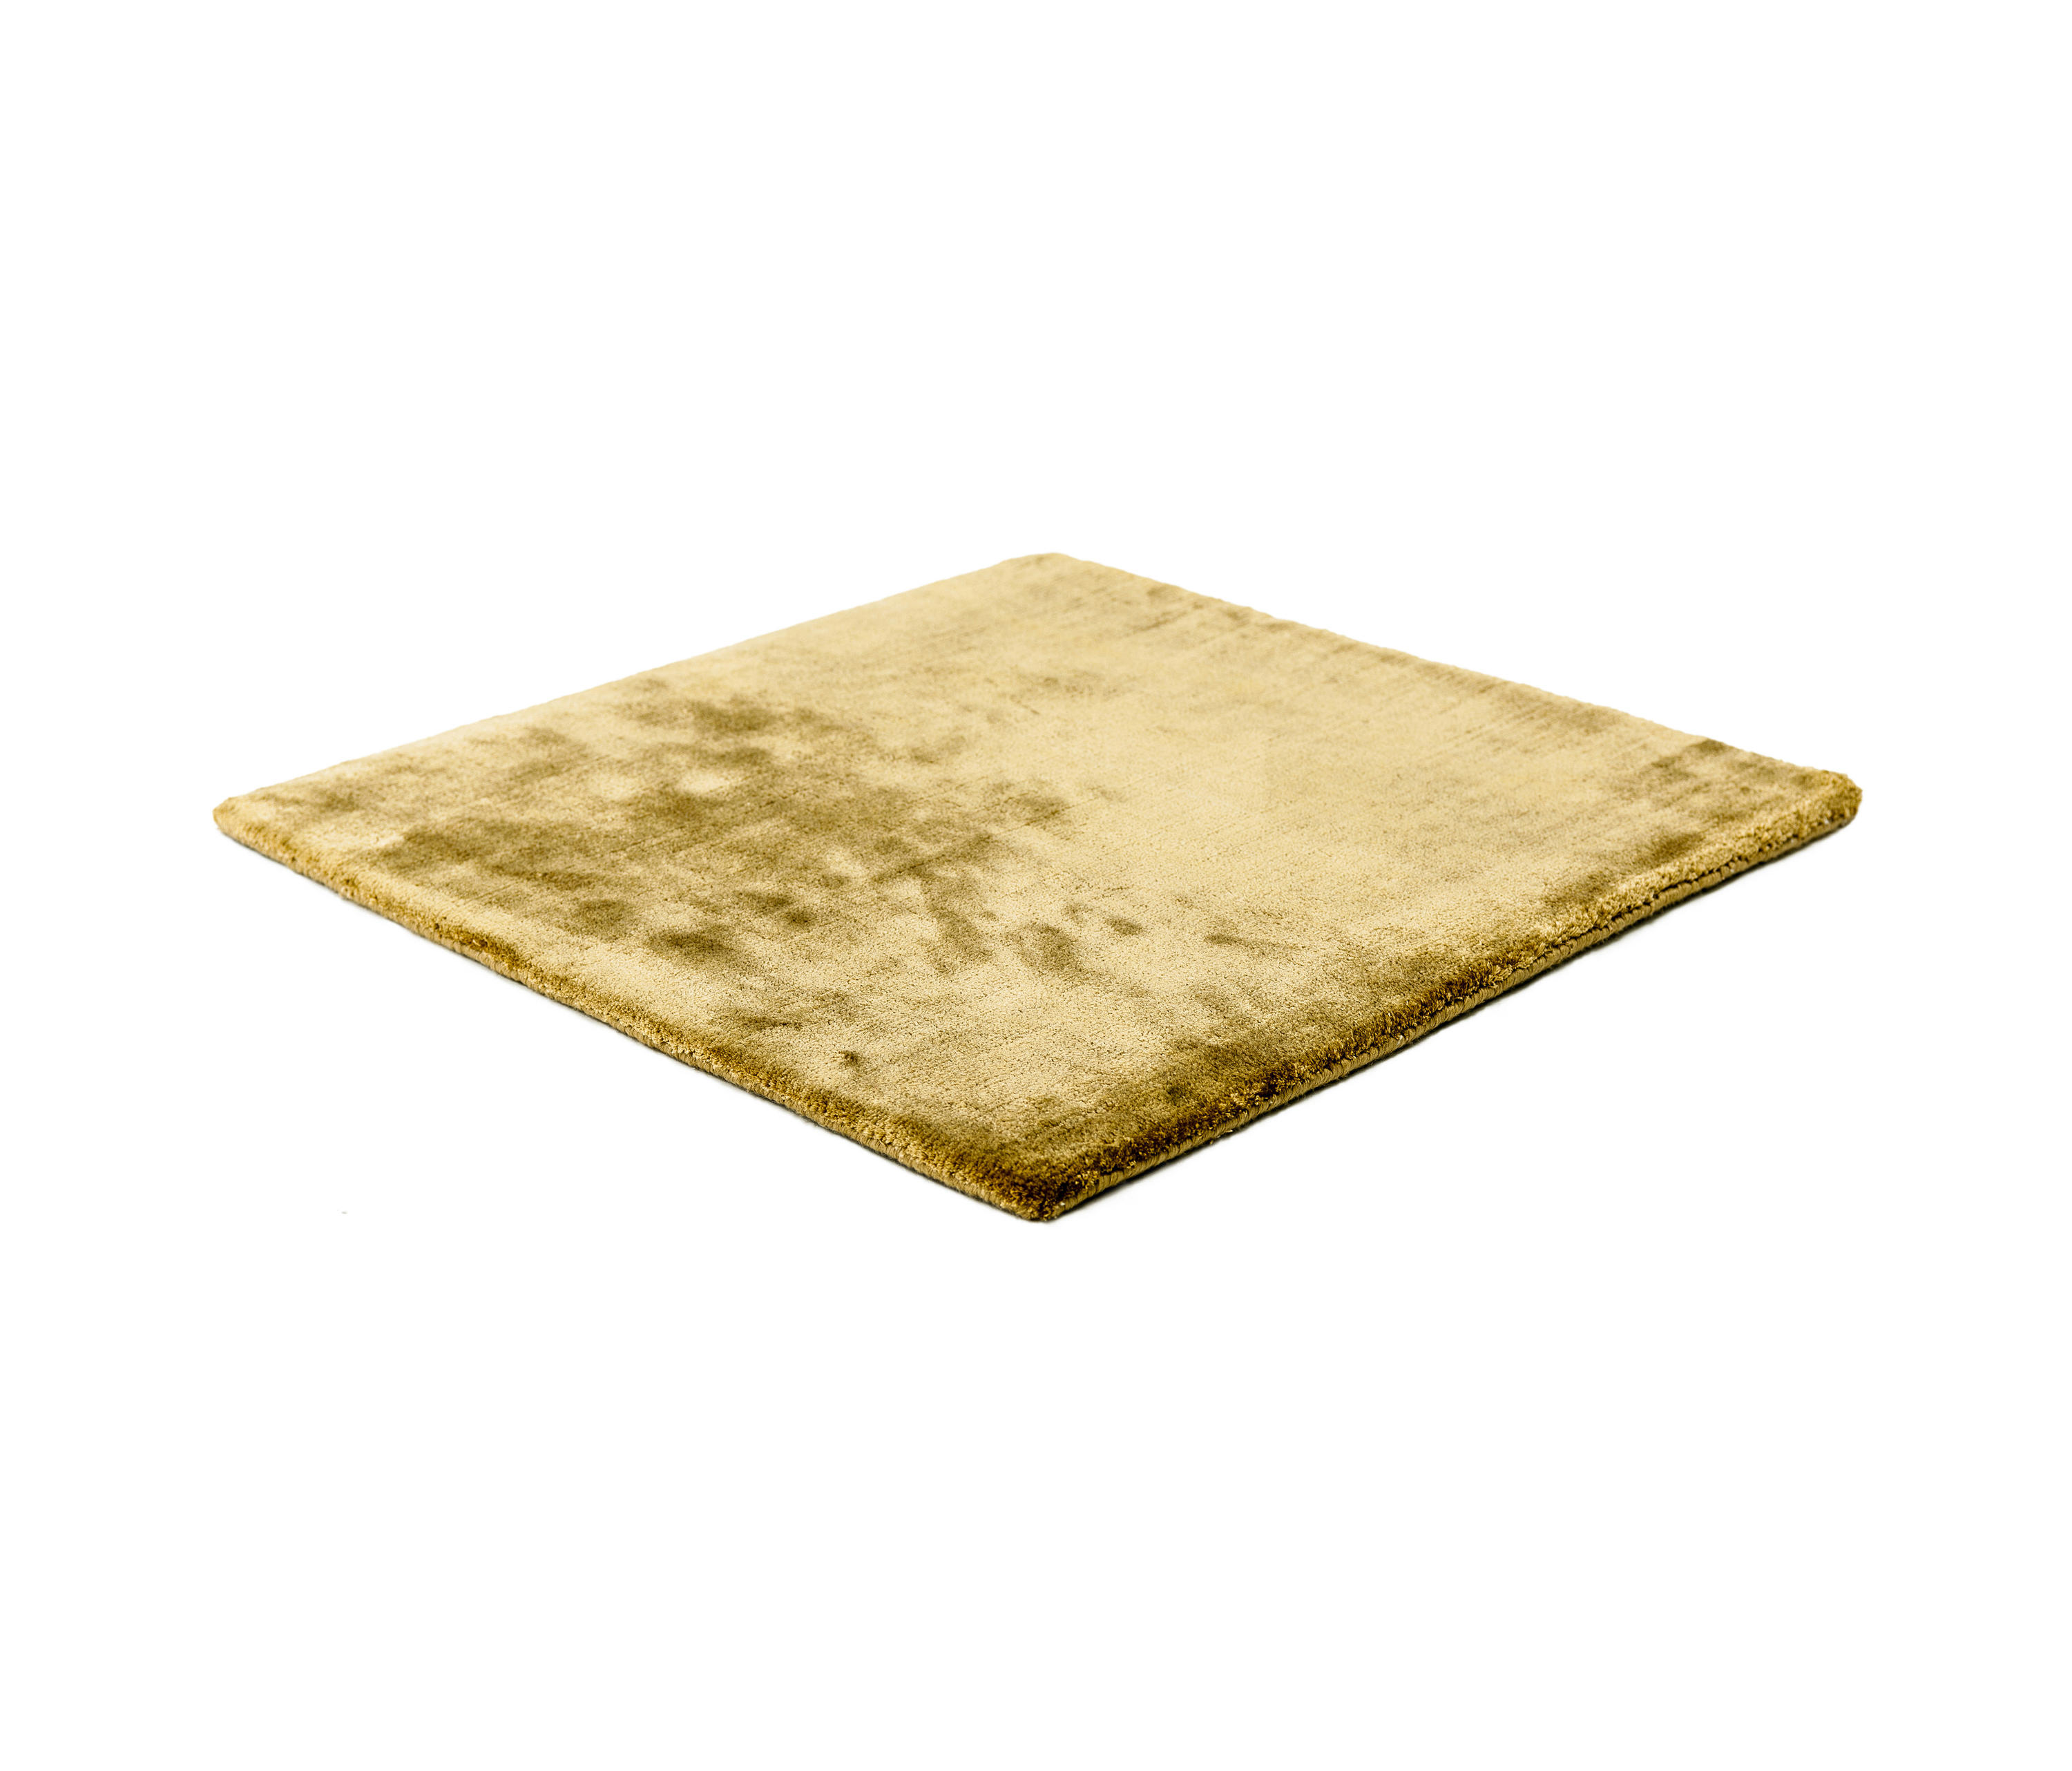 STUDIO NYC PEARL EDITION GOLD  Rugs  Designer rugs from